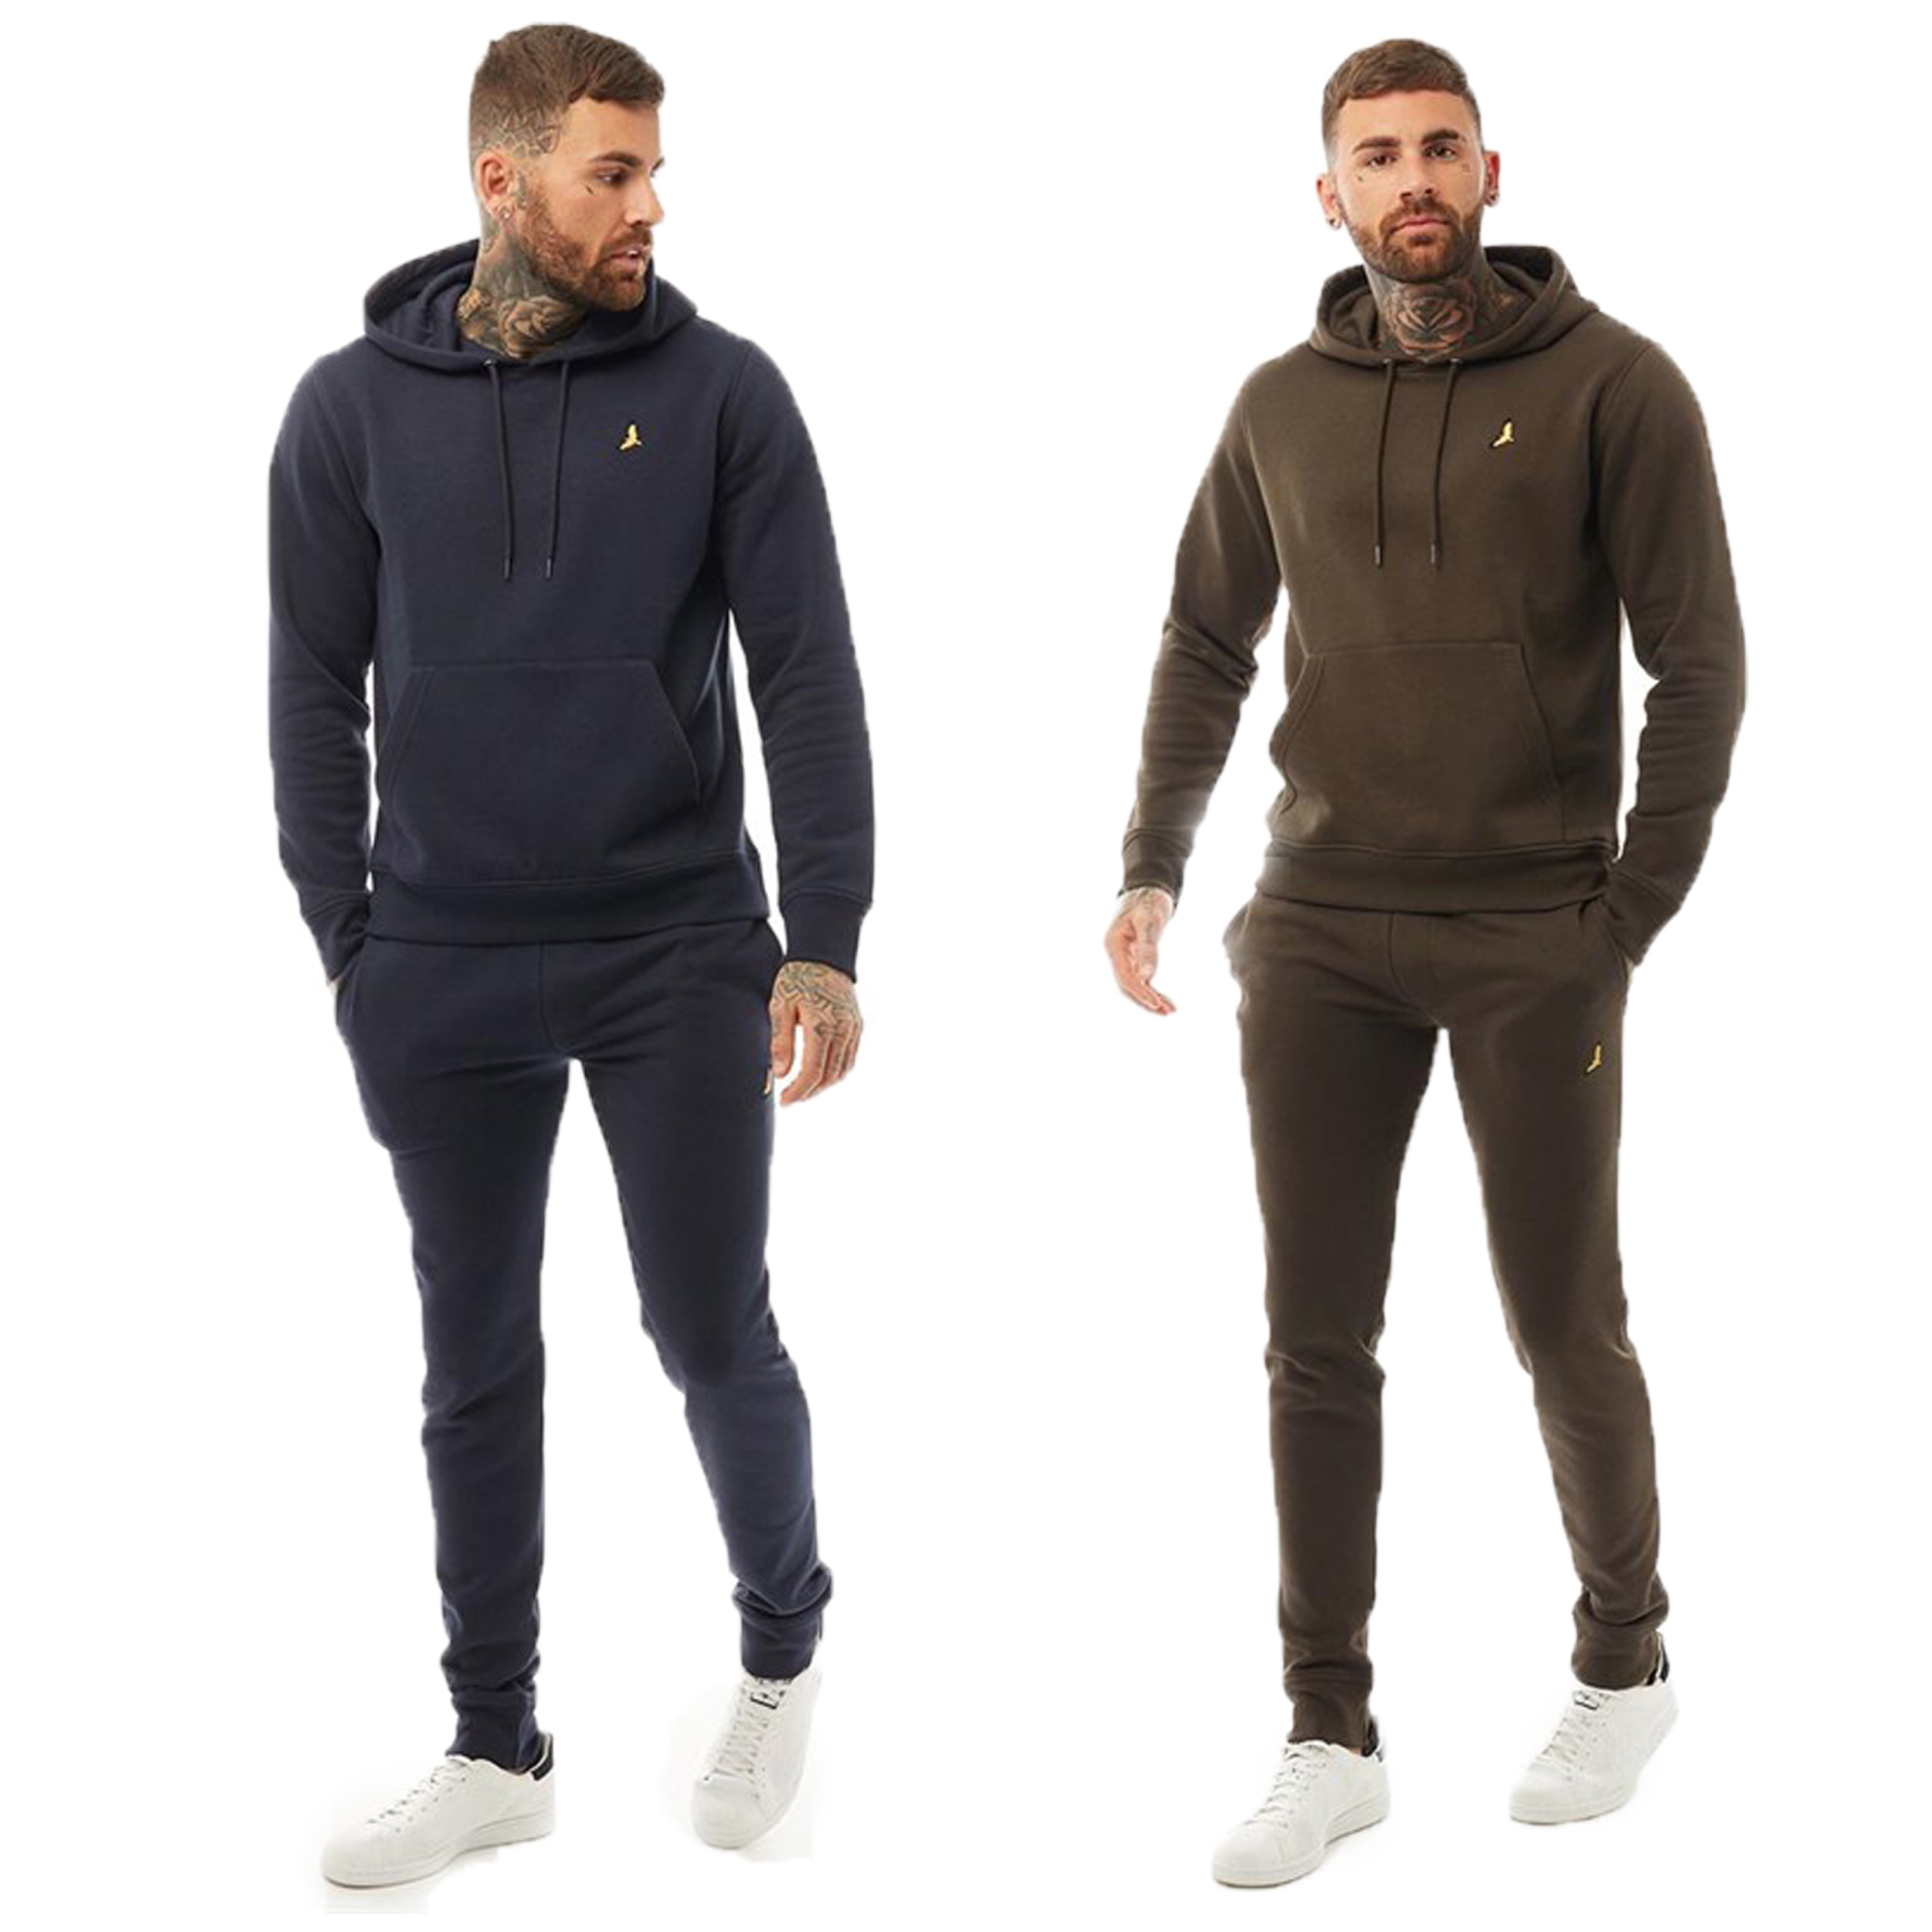 Mens-Brave-Soul-2-Pack-Over-The-Head-Hoodie-Shorts-Brushed-Back-Fleece-Fashion thumbnail 9